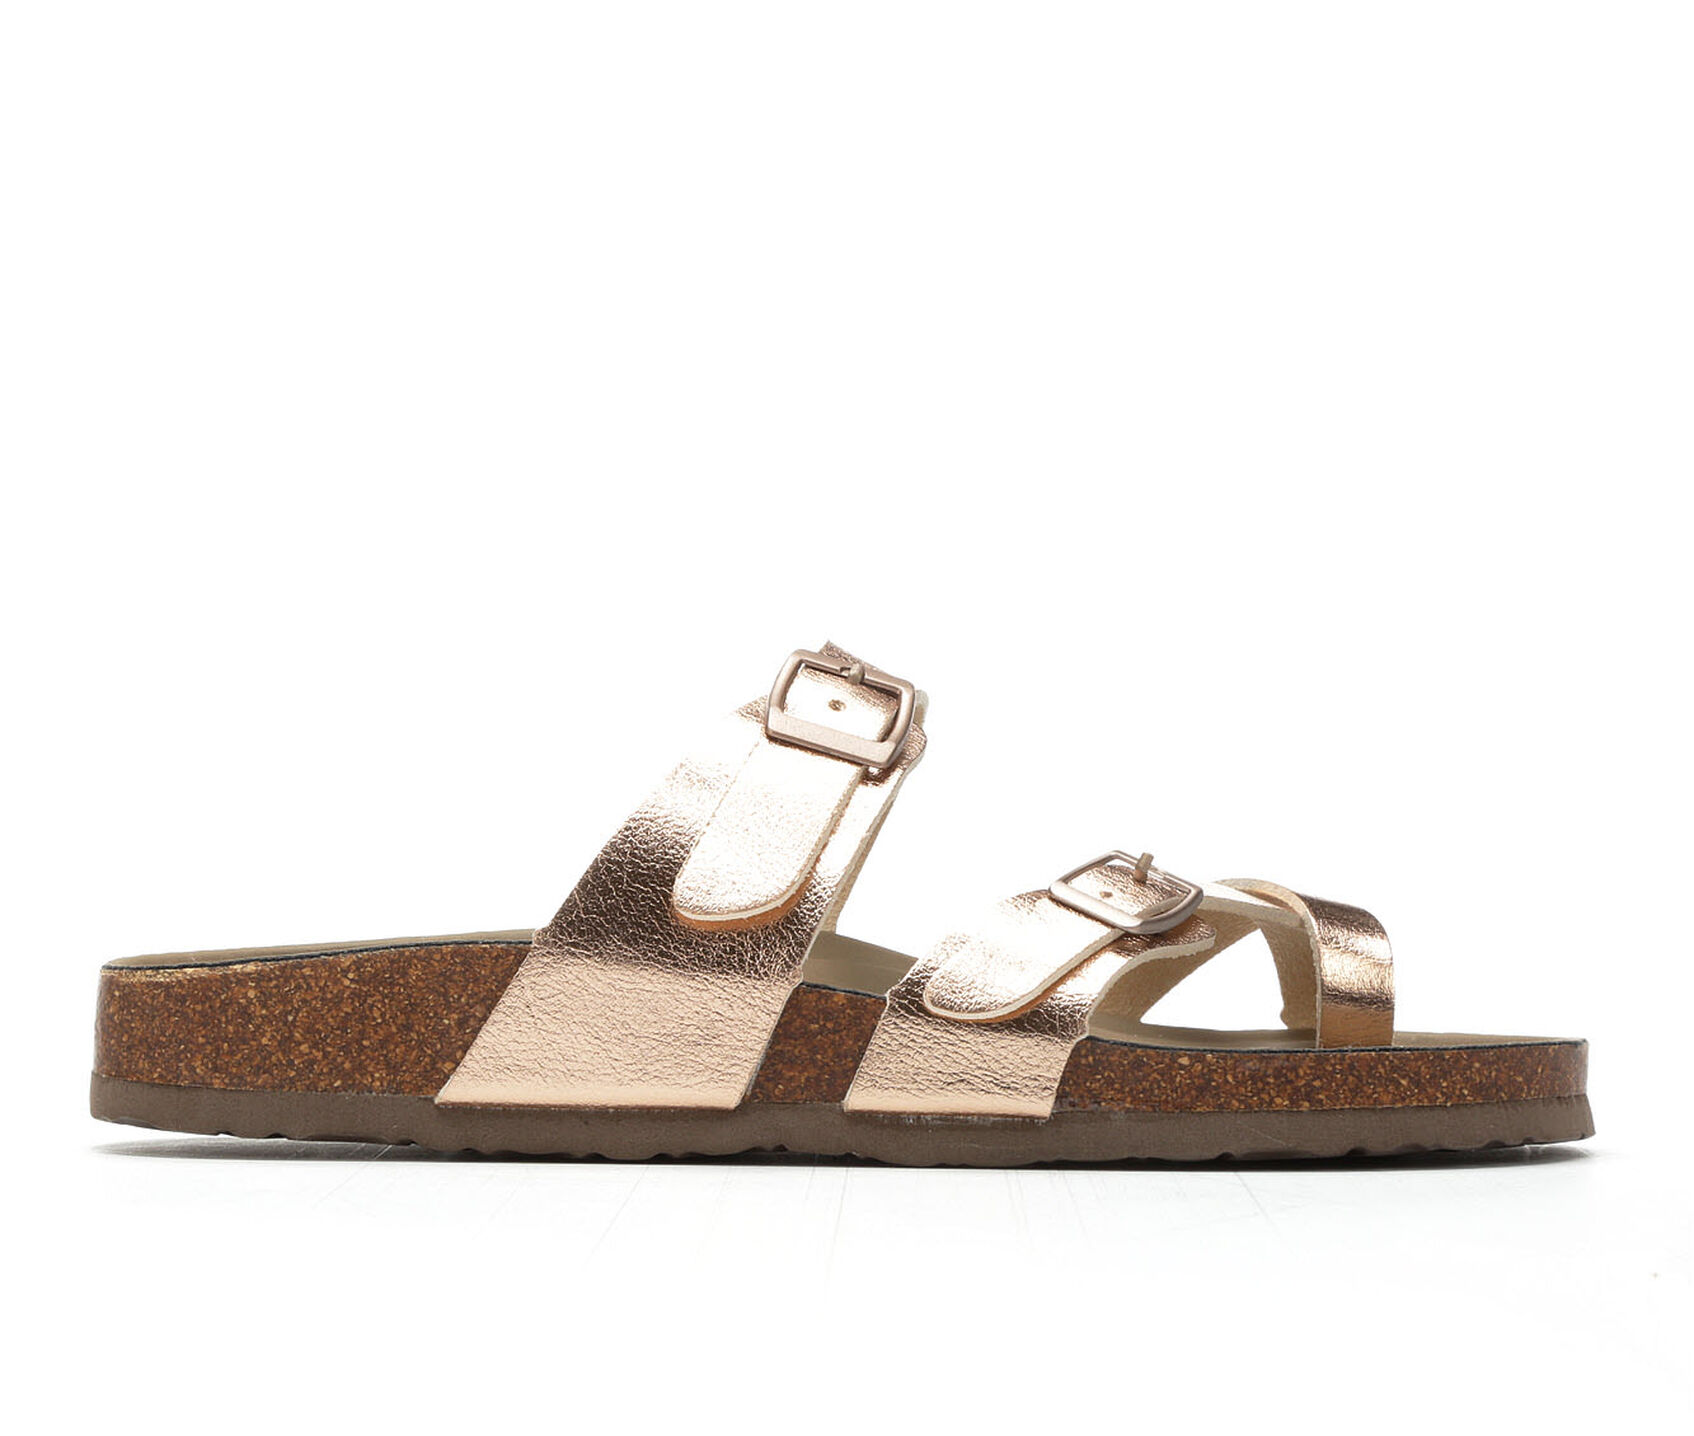 8b39454c3b09d ... Madden Girl Bryceee Footbed Sandals. Previous